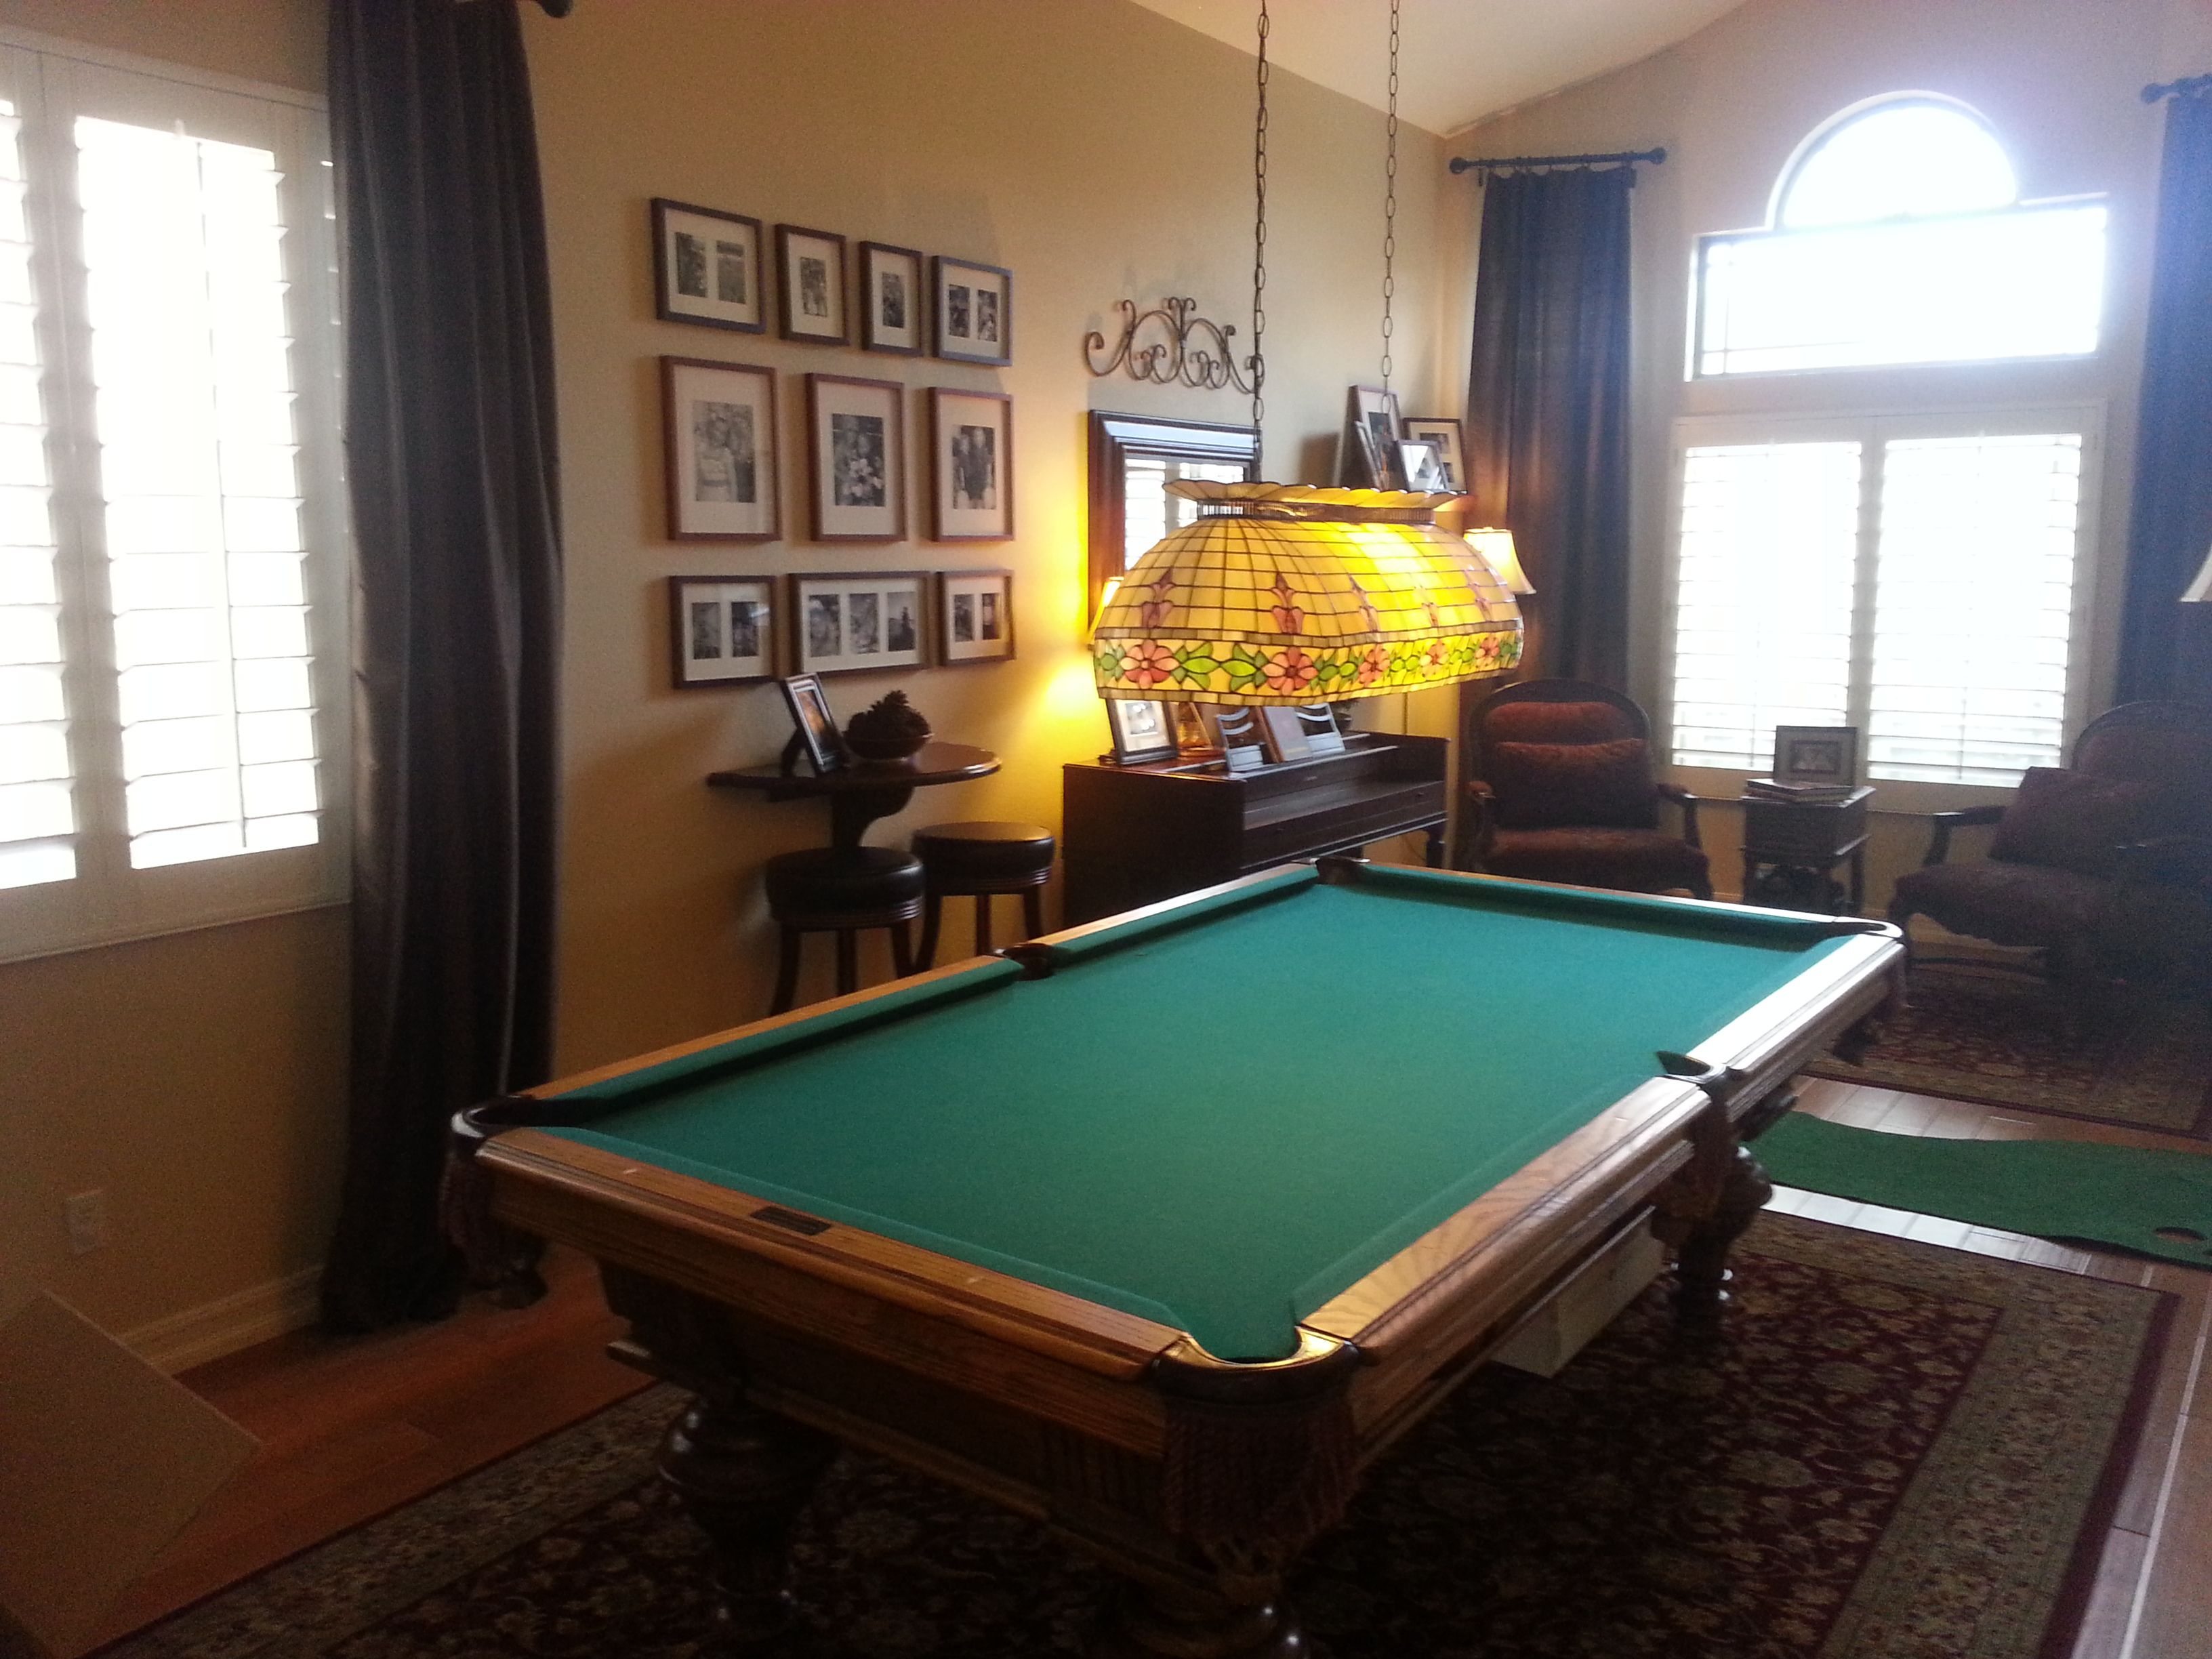 Formal Living Dining Rooms Are Often Better Used For Pool